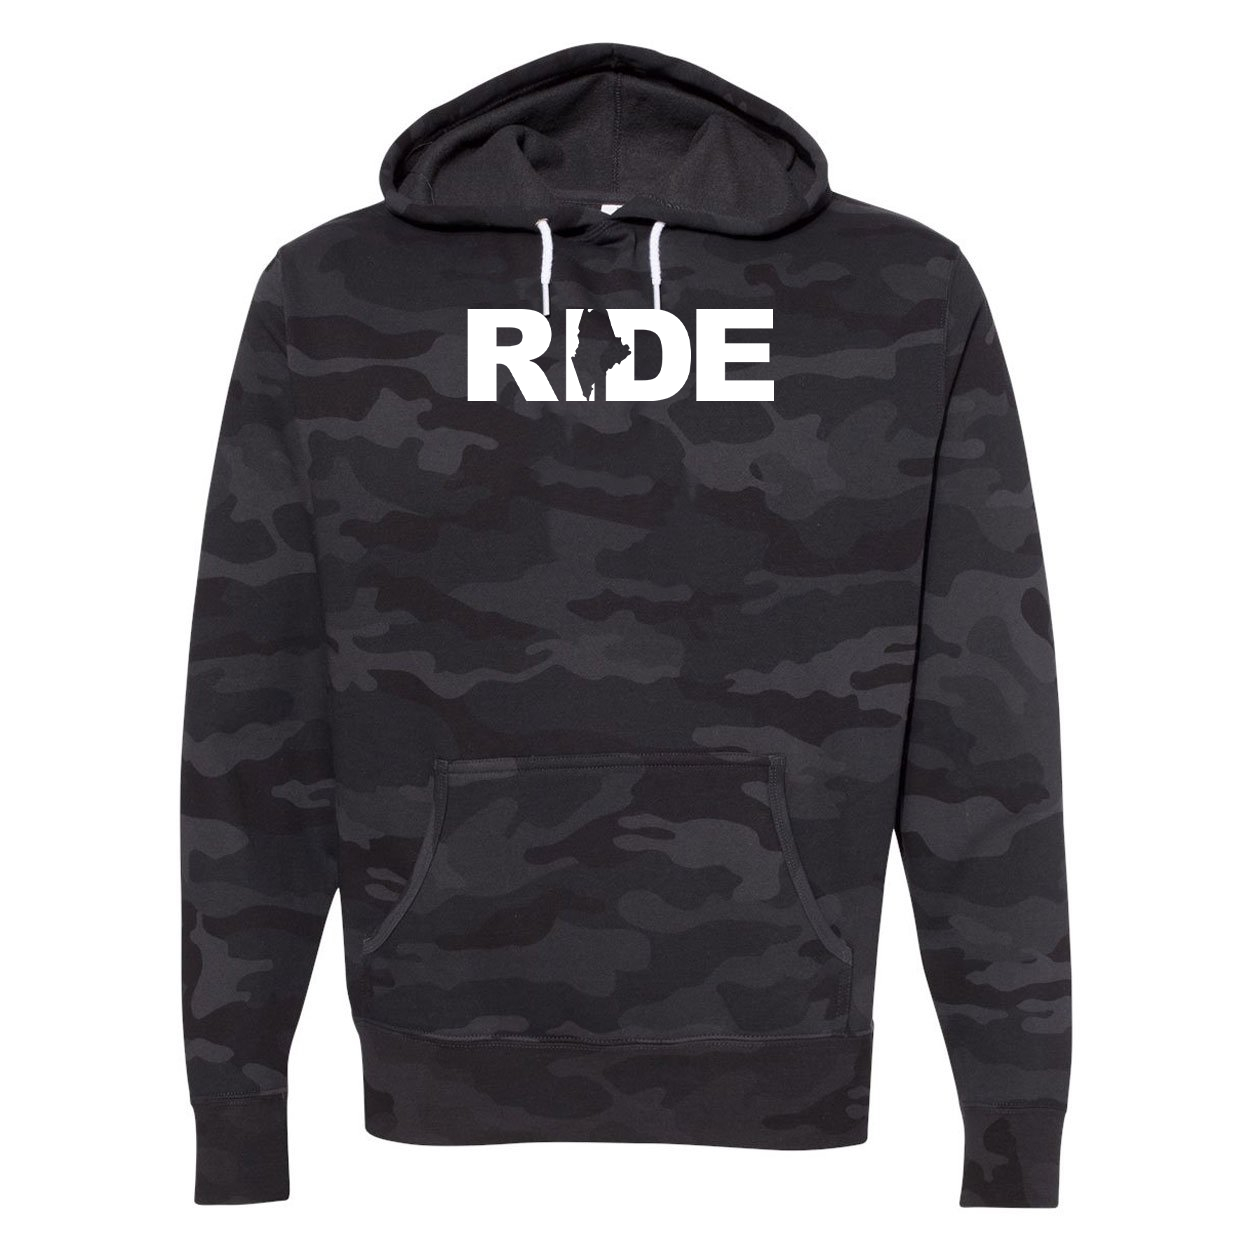 Ride Maine Classic Unisex Hooded Sweatshirt Black Camo (White Logo)